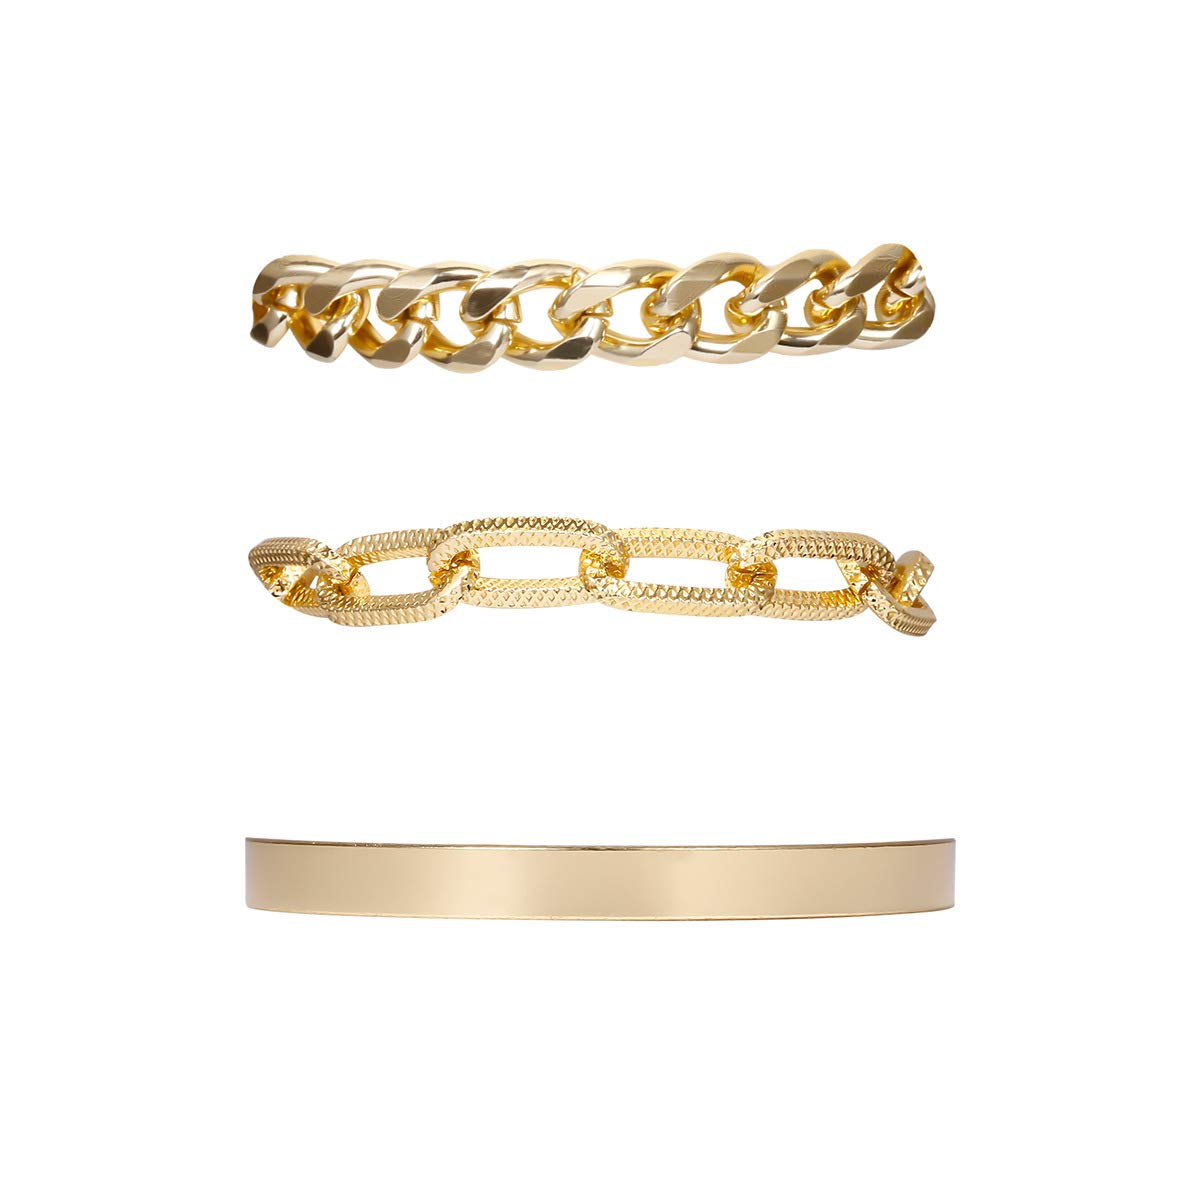 Aimimier 3Pcs Boho Layered Paperclip Link Chain Bracelet Set Chunky Cuff Wrap Bangle Prom Party Festival Statement Jewelry for Women and Girls (Gold)